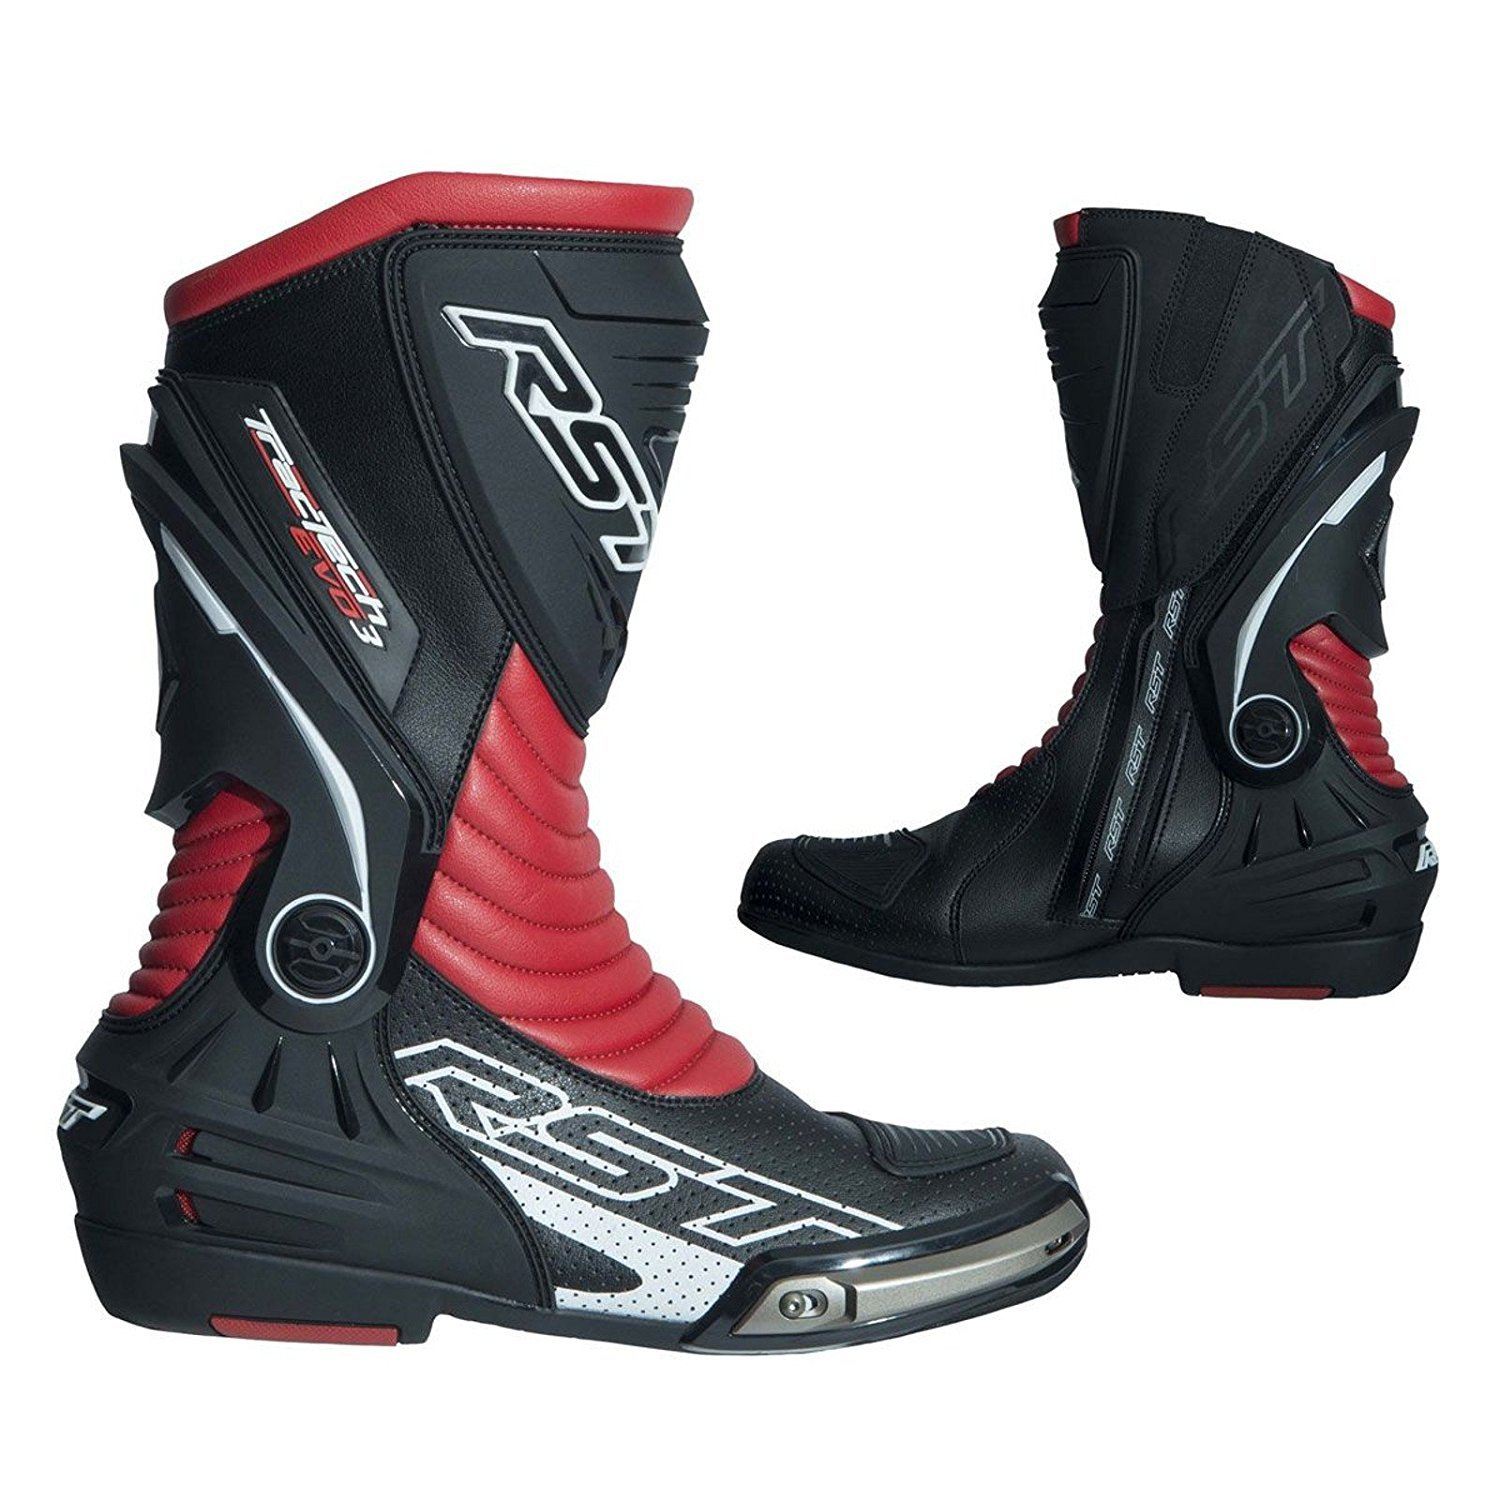 RST TracTech Evo CE 2101 Boots New 2018 Motorcycle Boots